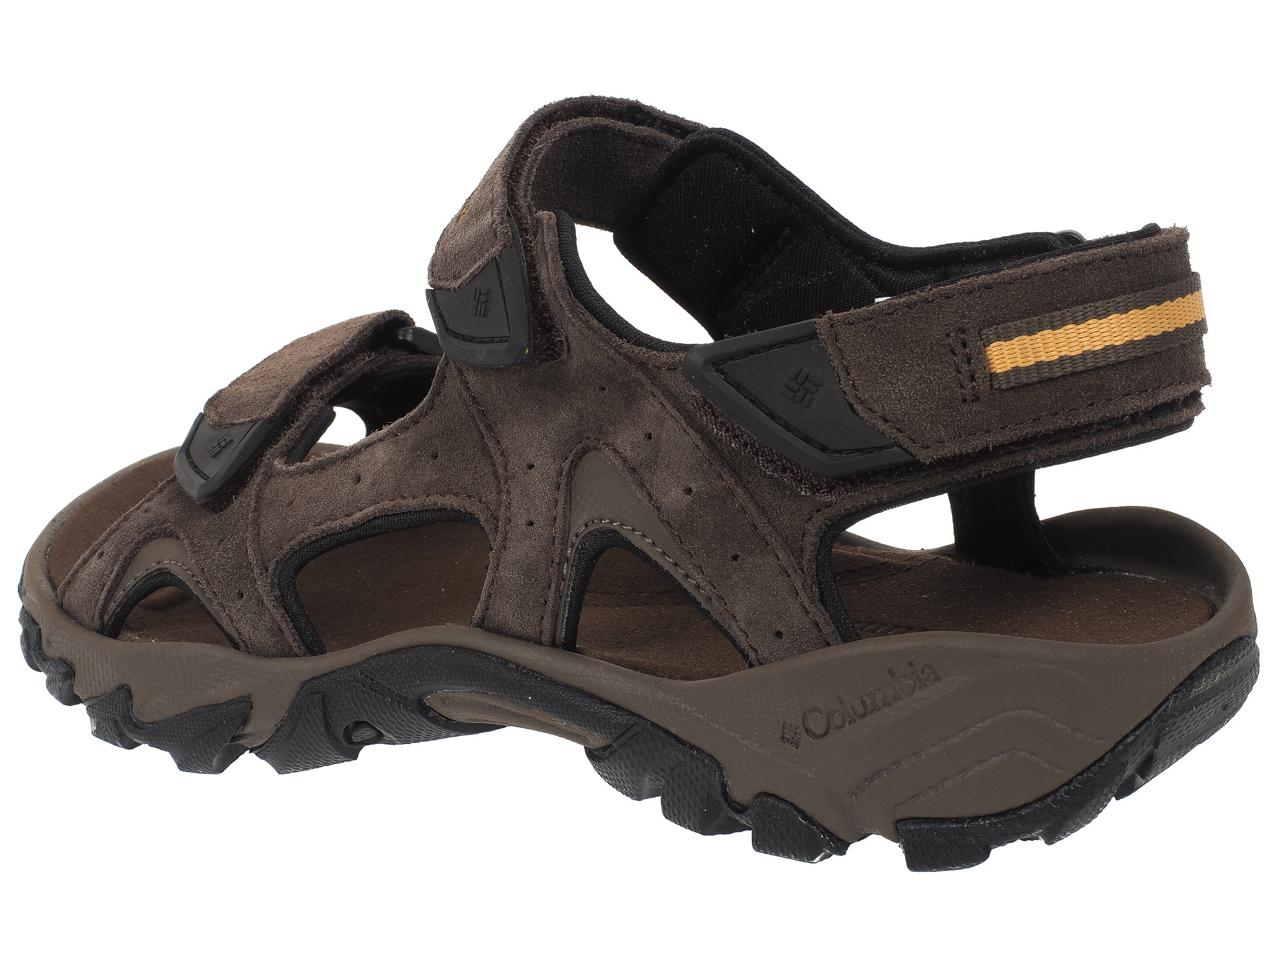 Sandals-Columbia-Santiam-3-Strap-Brown-44903-New thumbnail 2